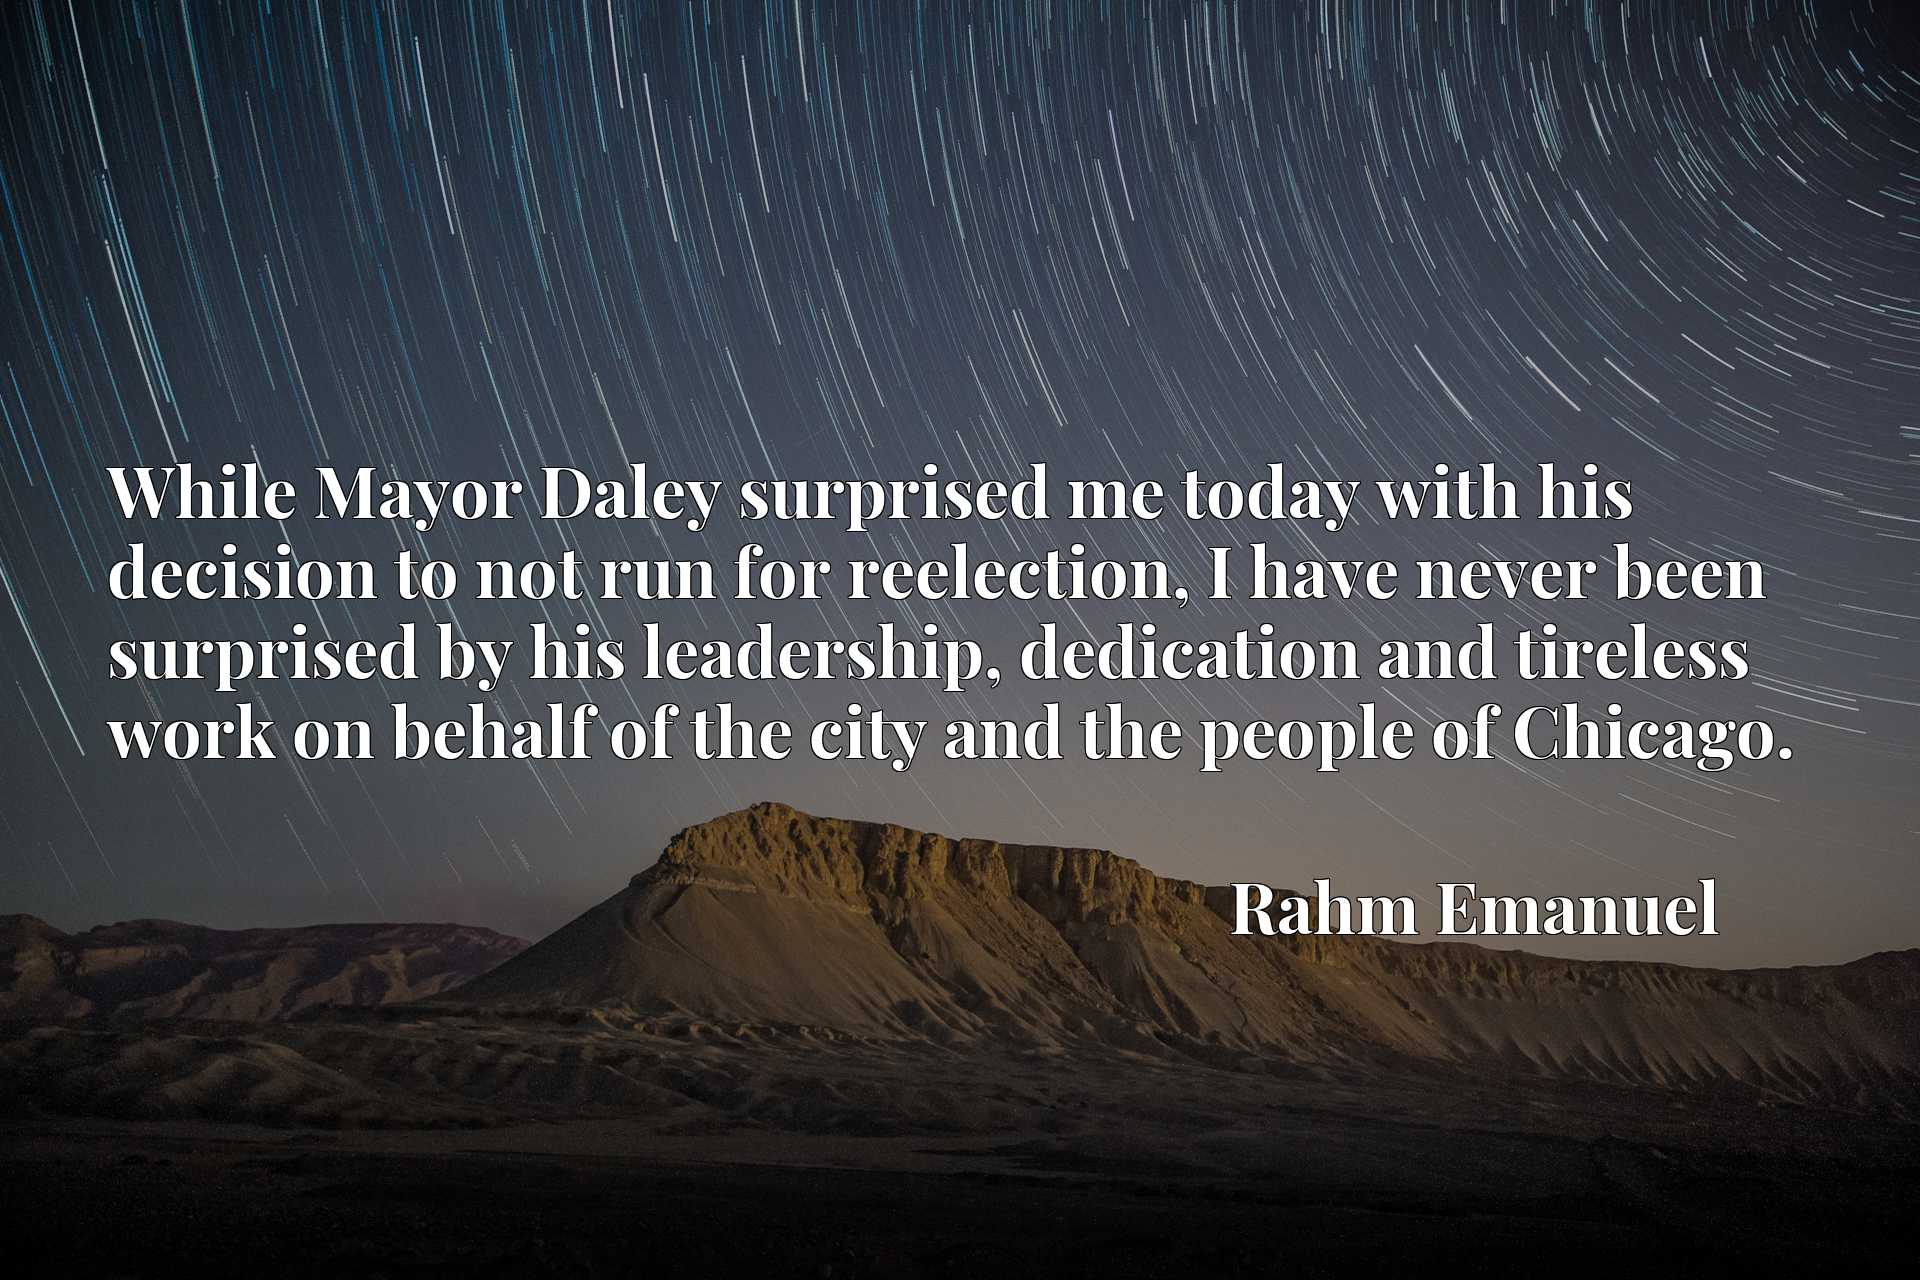 While Mayor Daley surprised me today with his decision to not run for reelection, I have never been surprised by his leadership, dedication and tireless work on behalf of the city and the people of Chicago.